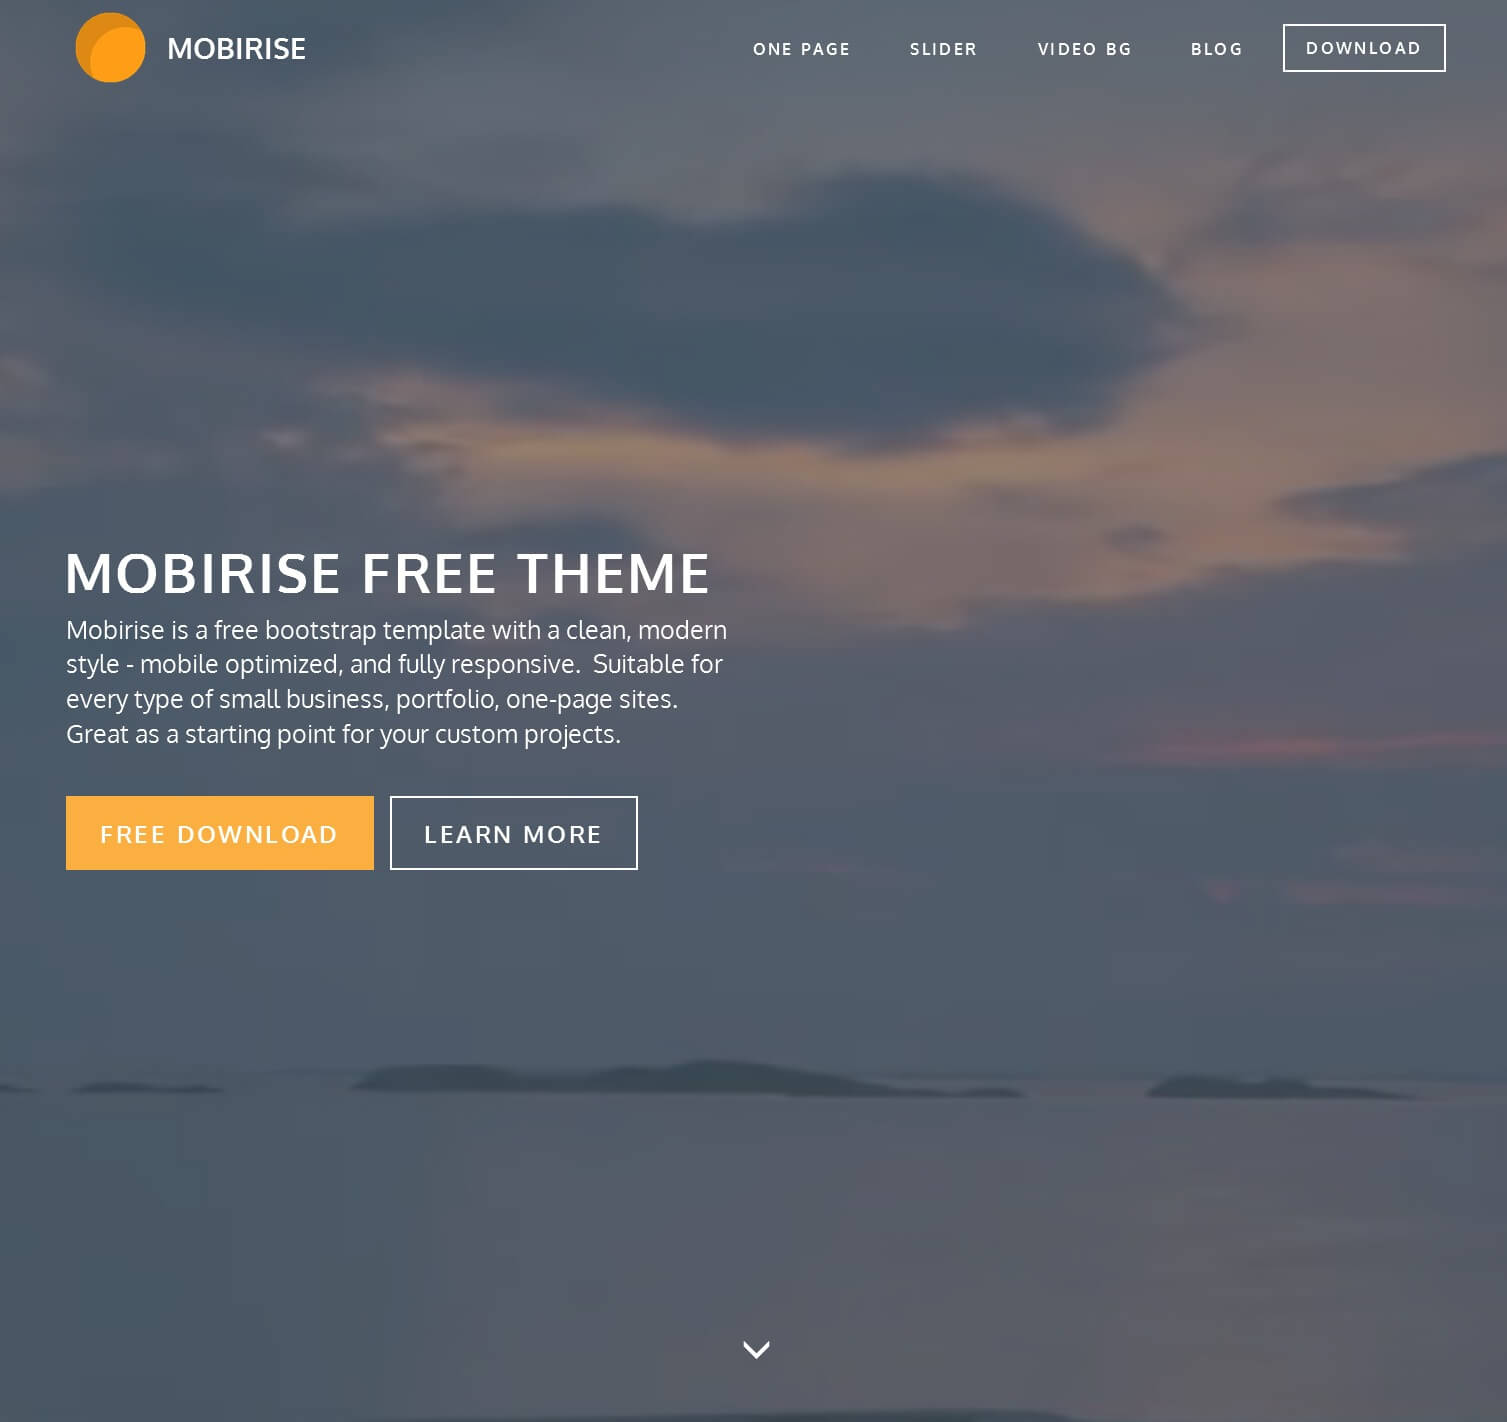 Blank Html Templates Free Download ] – Resume Format With Blank Html Templates Free Download